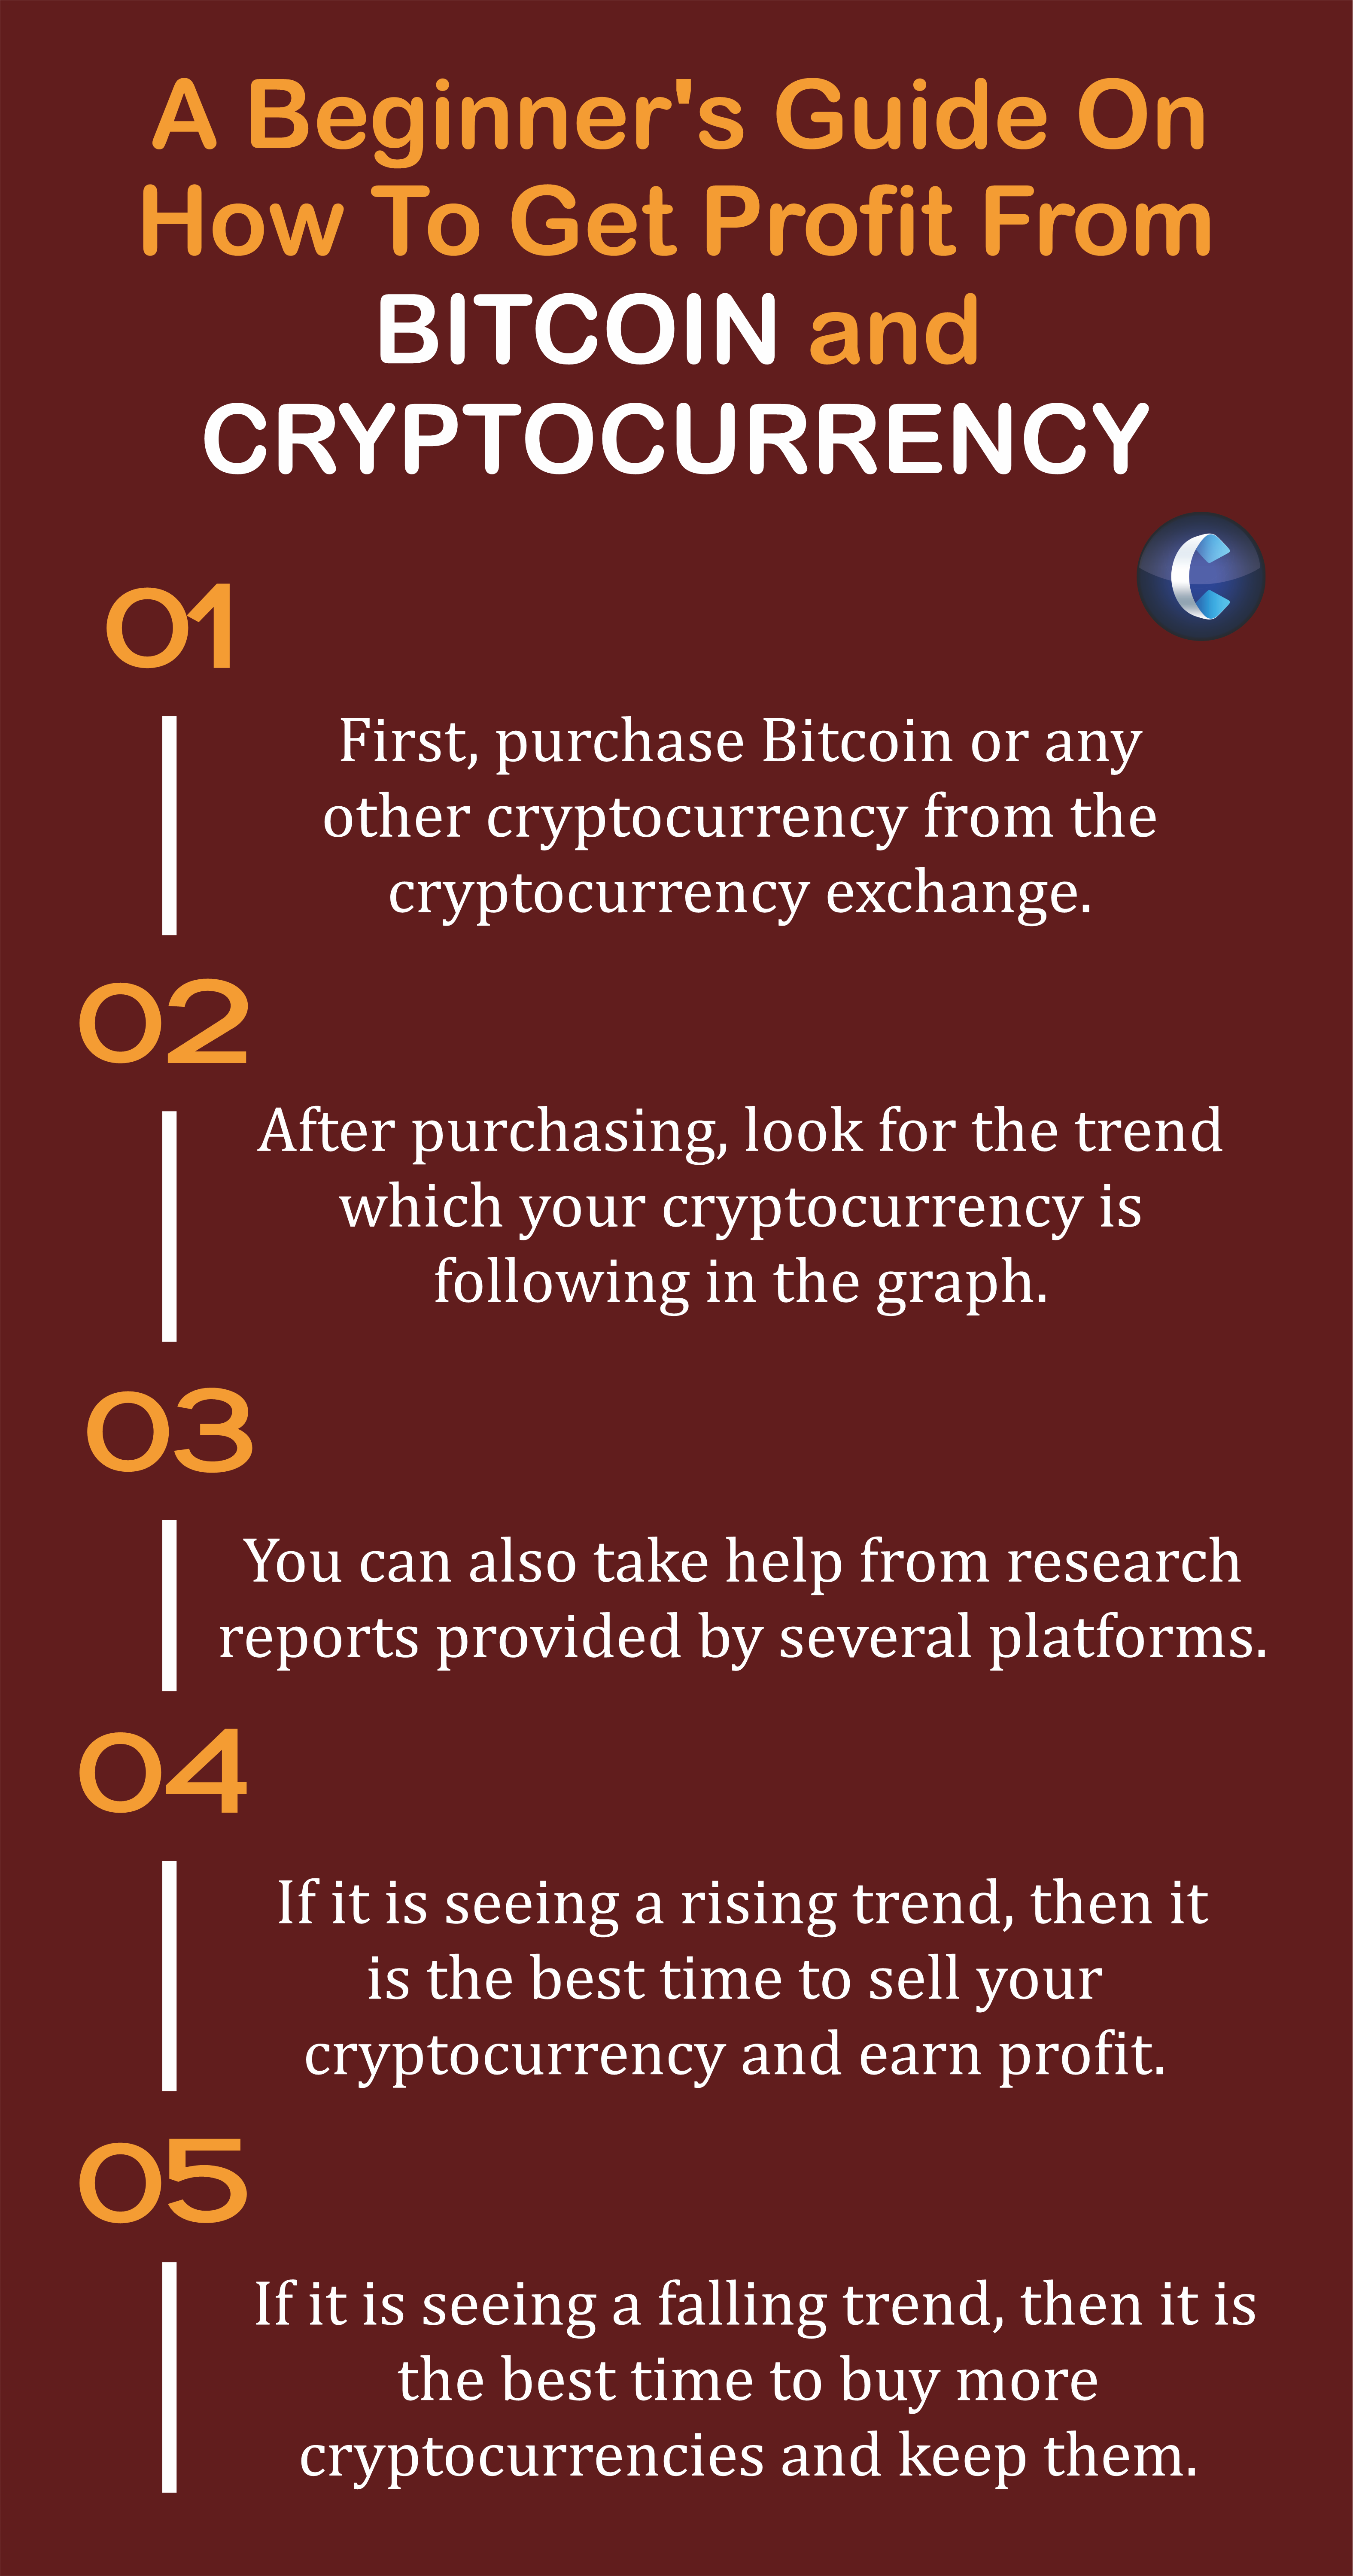 Profit from bitcoin and cryptocurrency